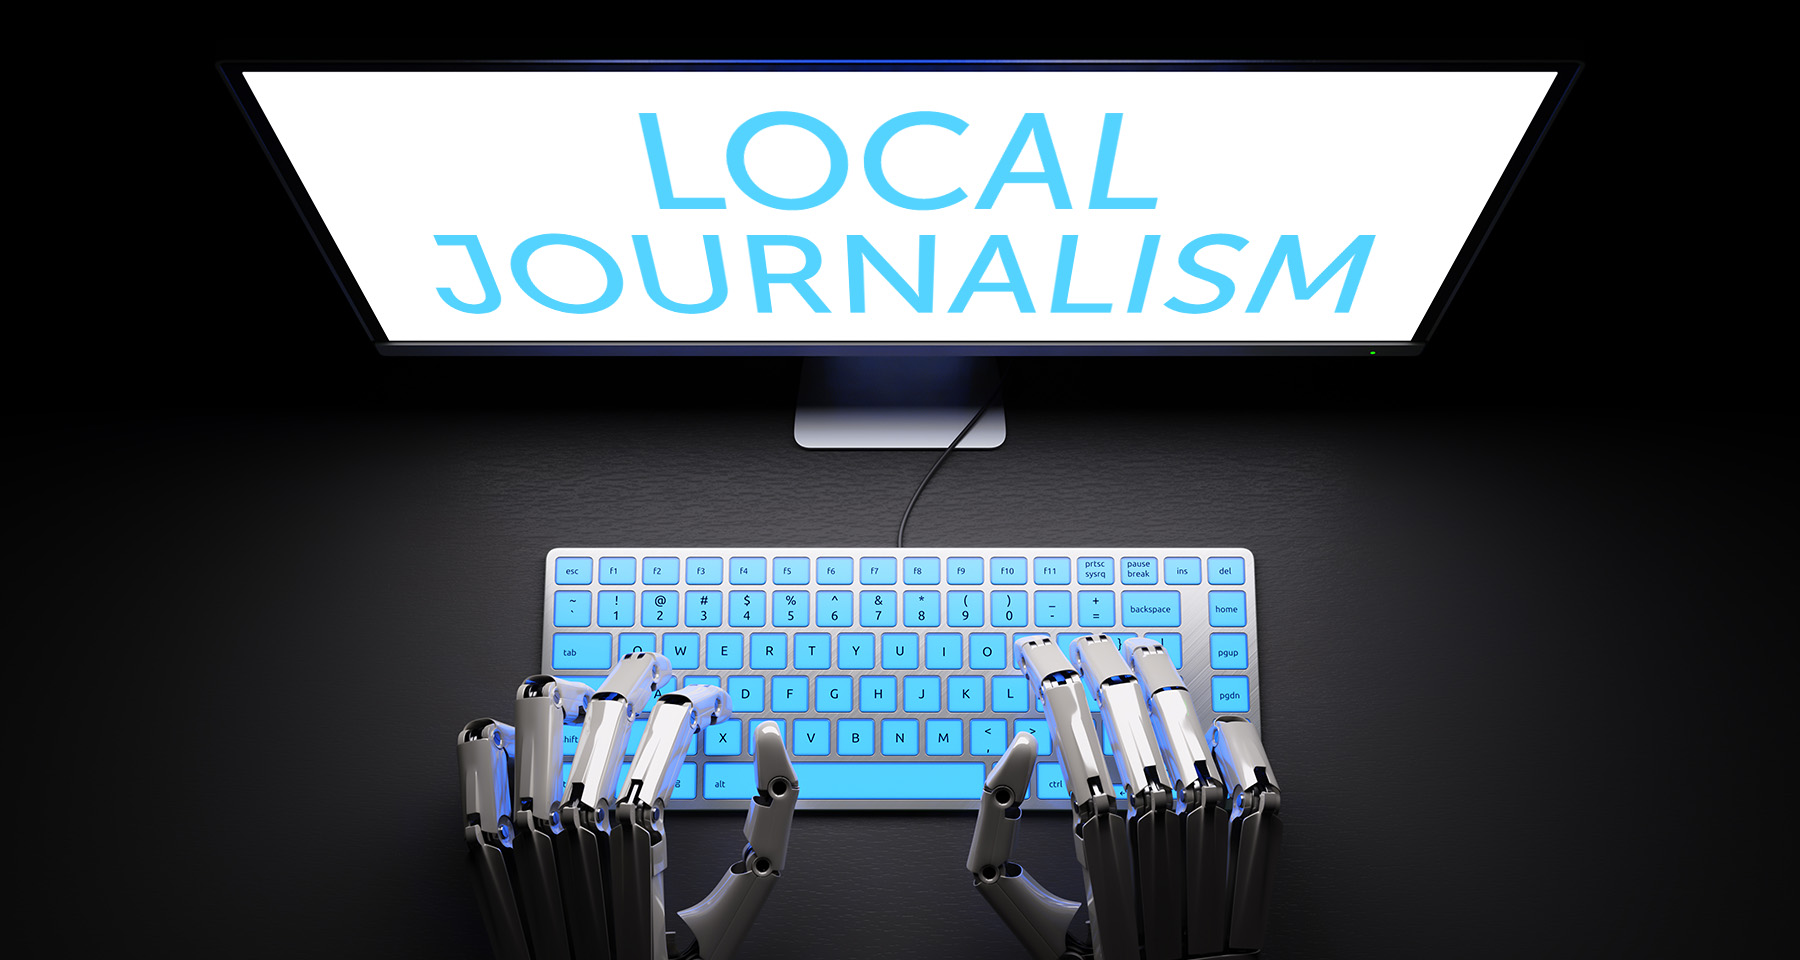 Robots can never be journalists